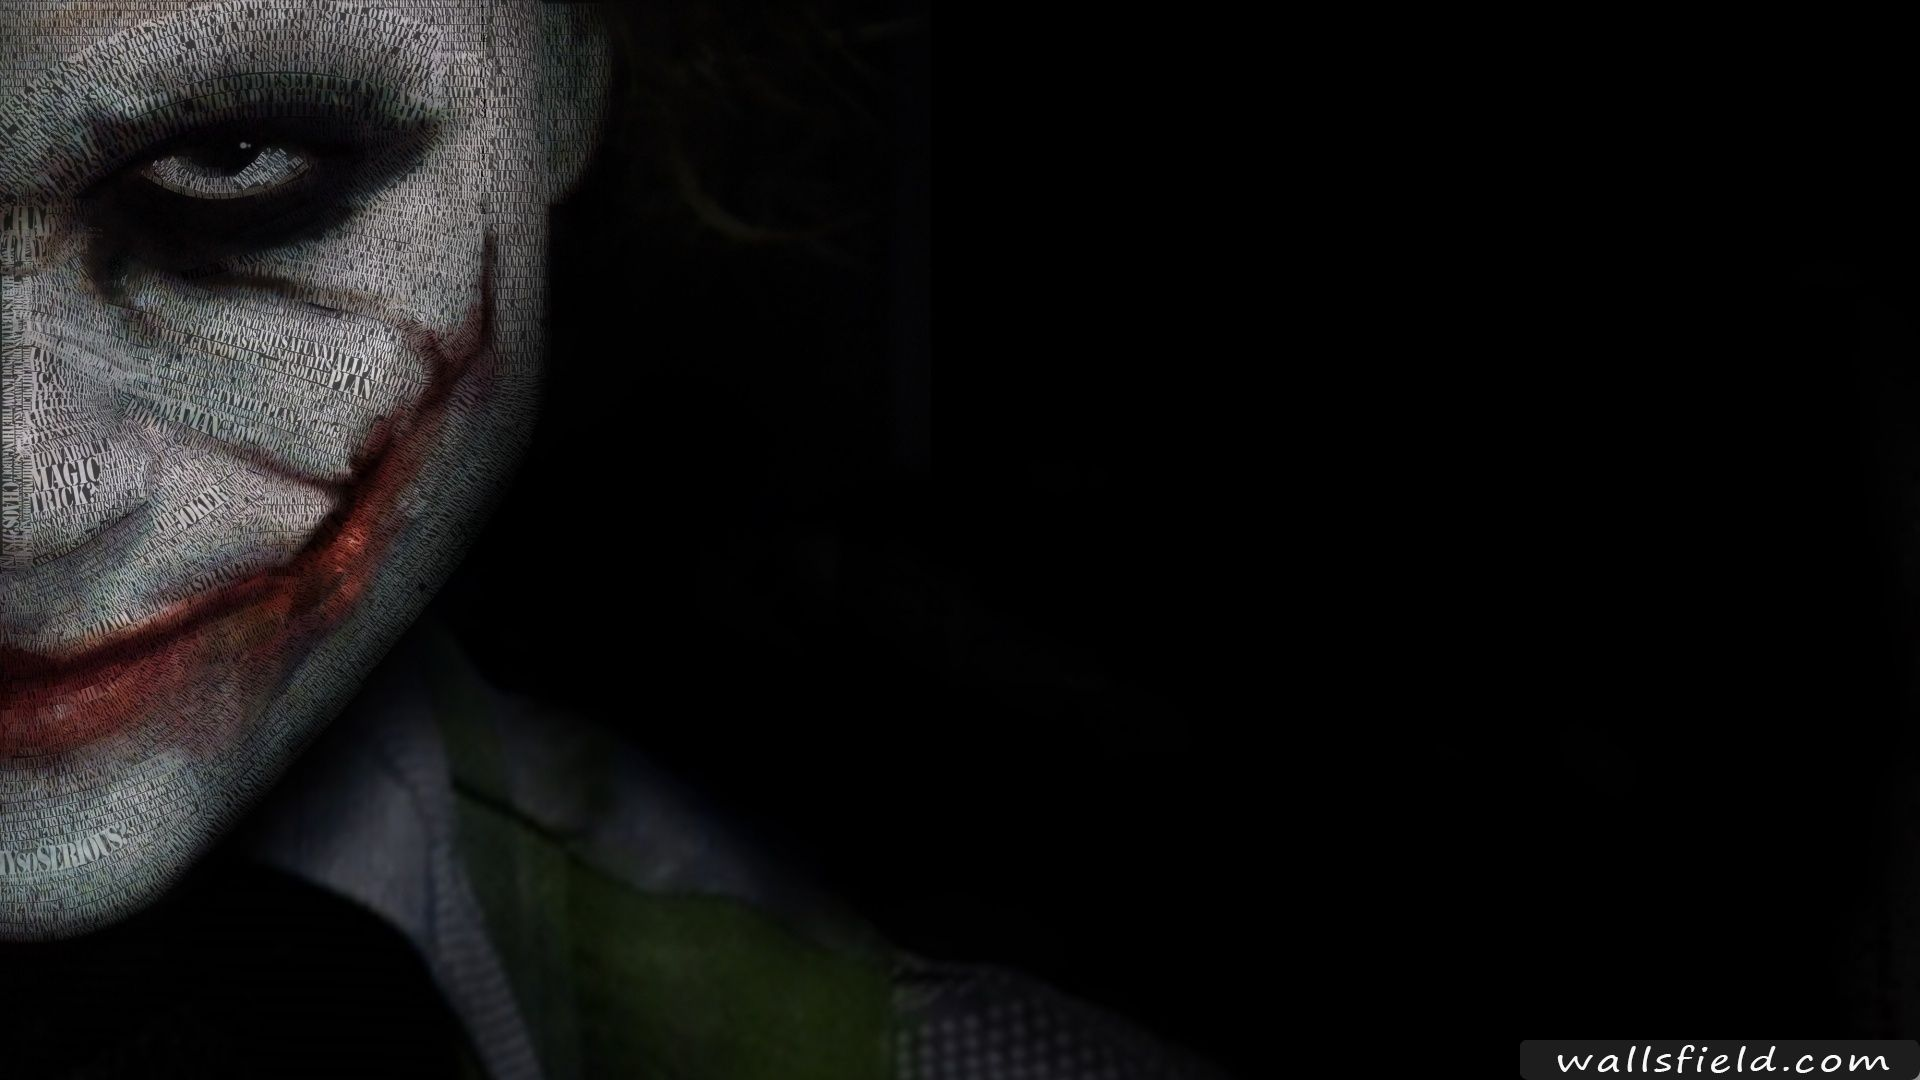 Joker Smile Joker Wallpapers Joker Hd Wallpaper Heath Ledger Joker Wallpaper